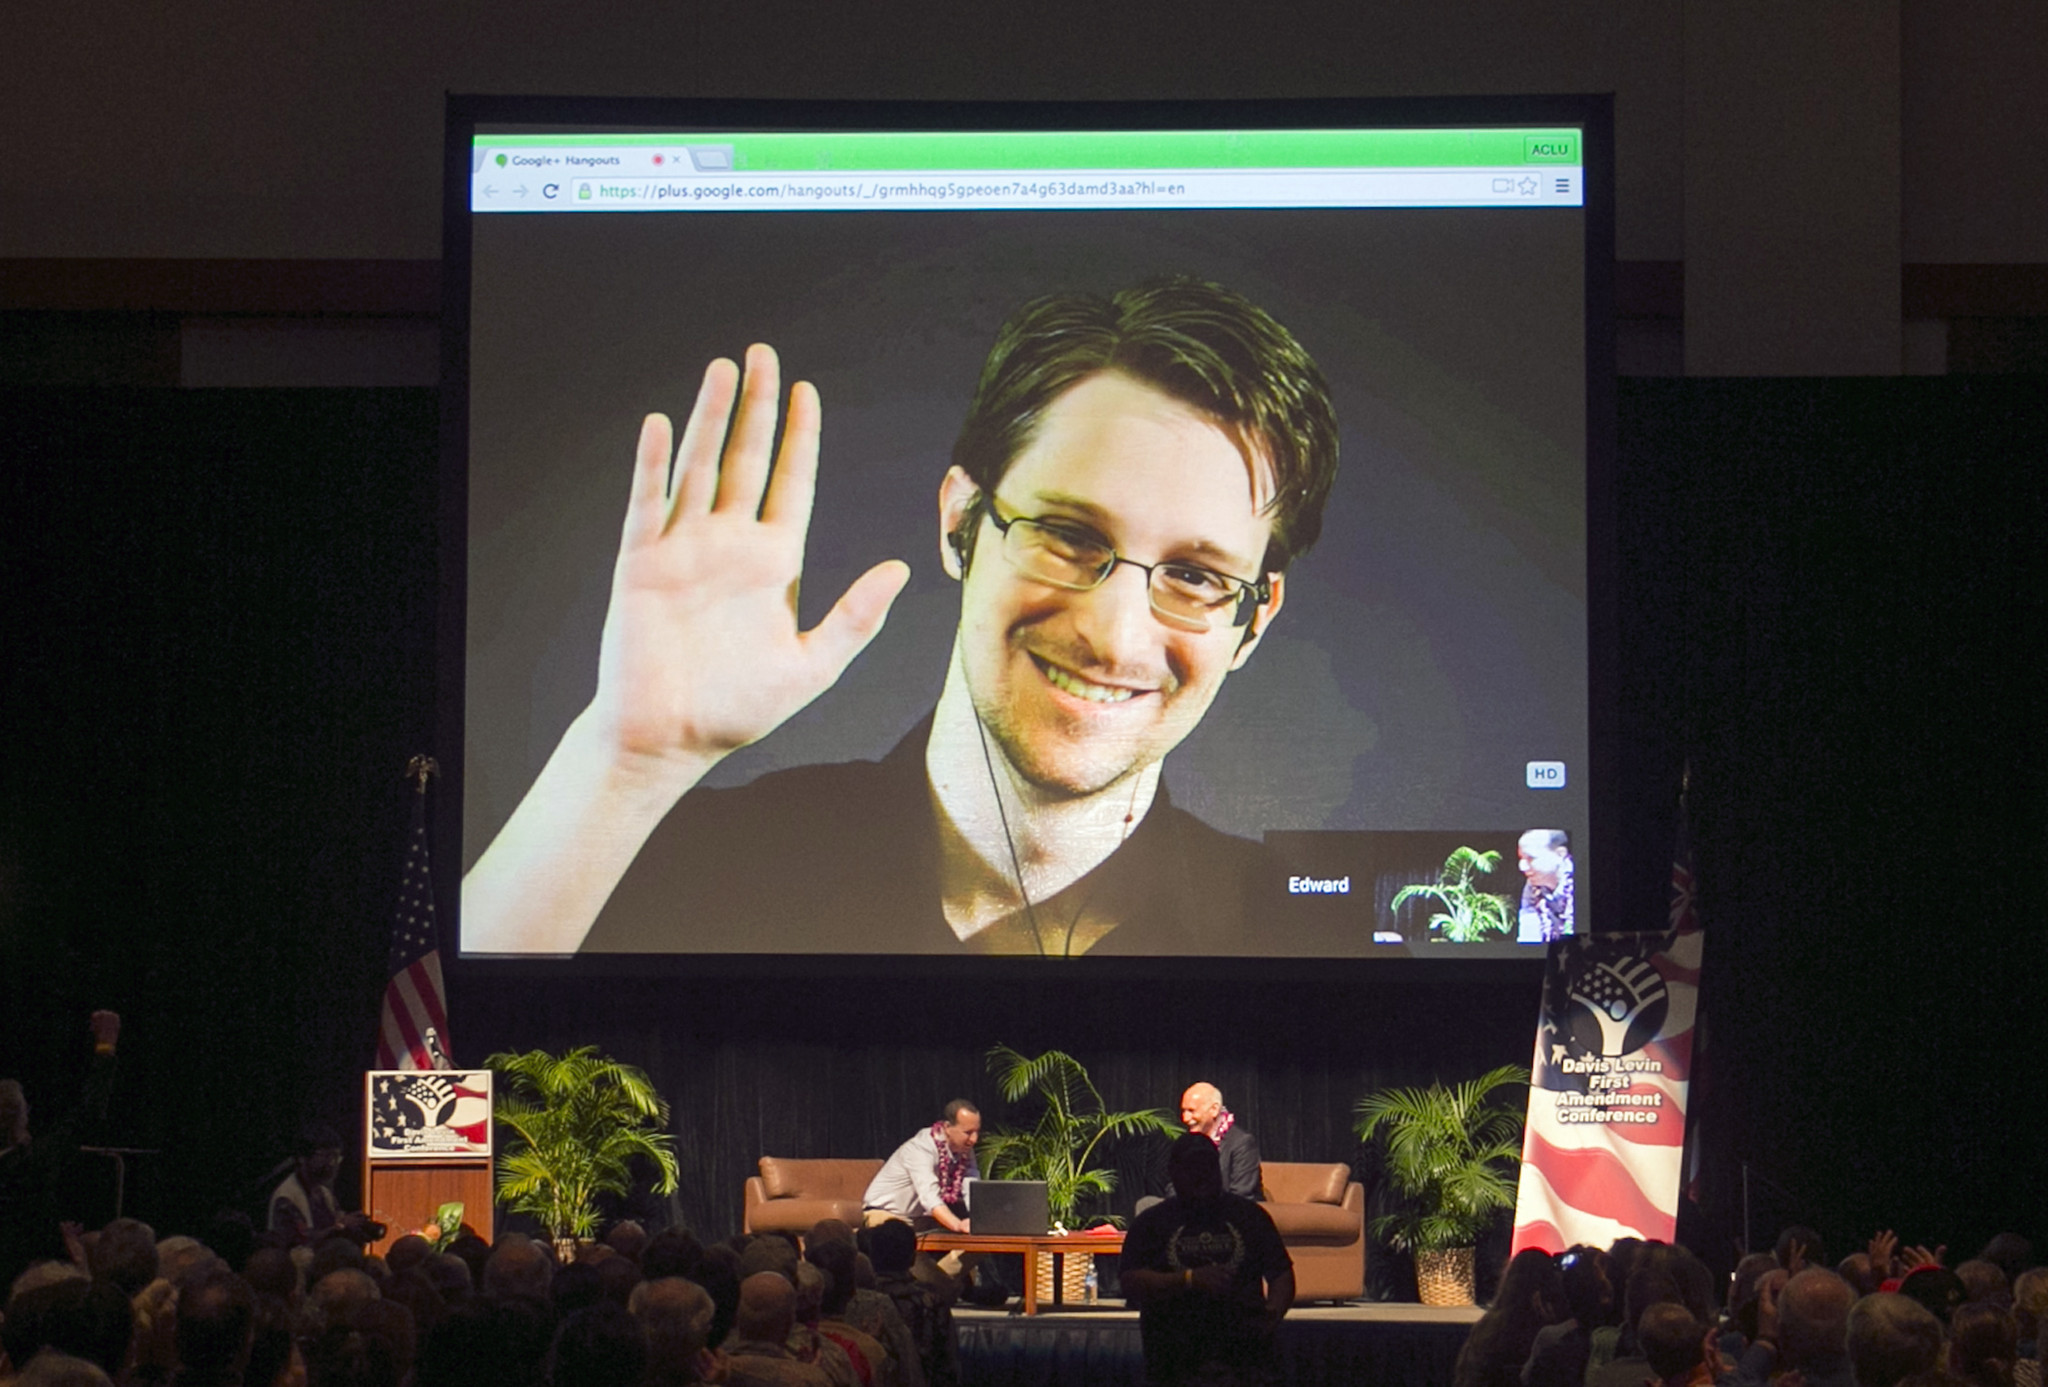 Edward Snowden says he's willing to return to U.S. if guaranteed fair trial